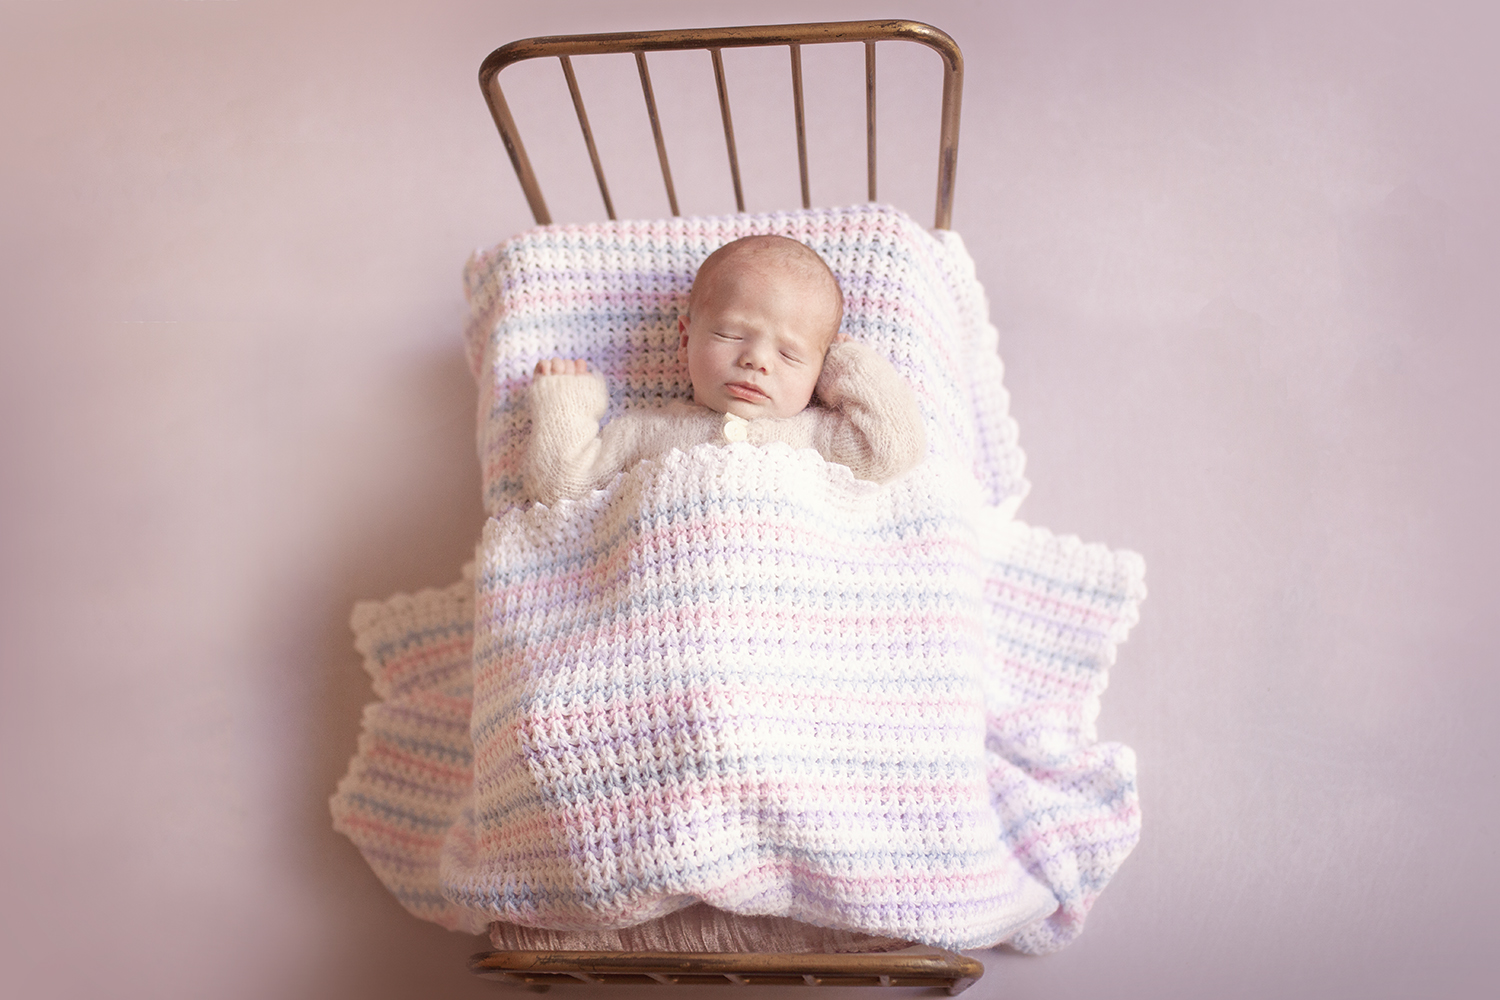 Newborn baby girl sleeping in vintage iron bed with pink white and purple knitted blanket wearing cream knit romper on pink backdrop